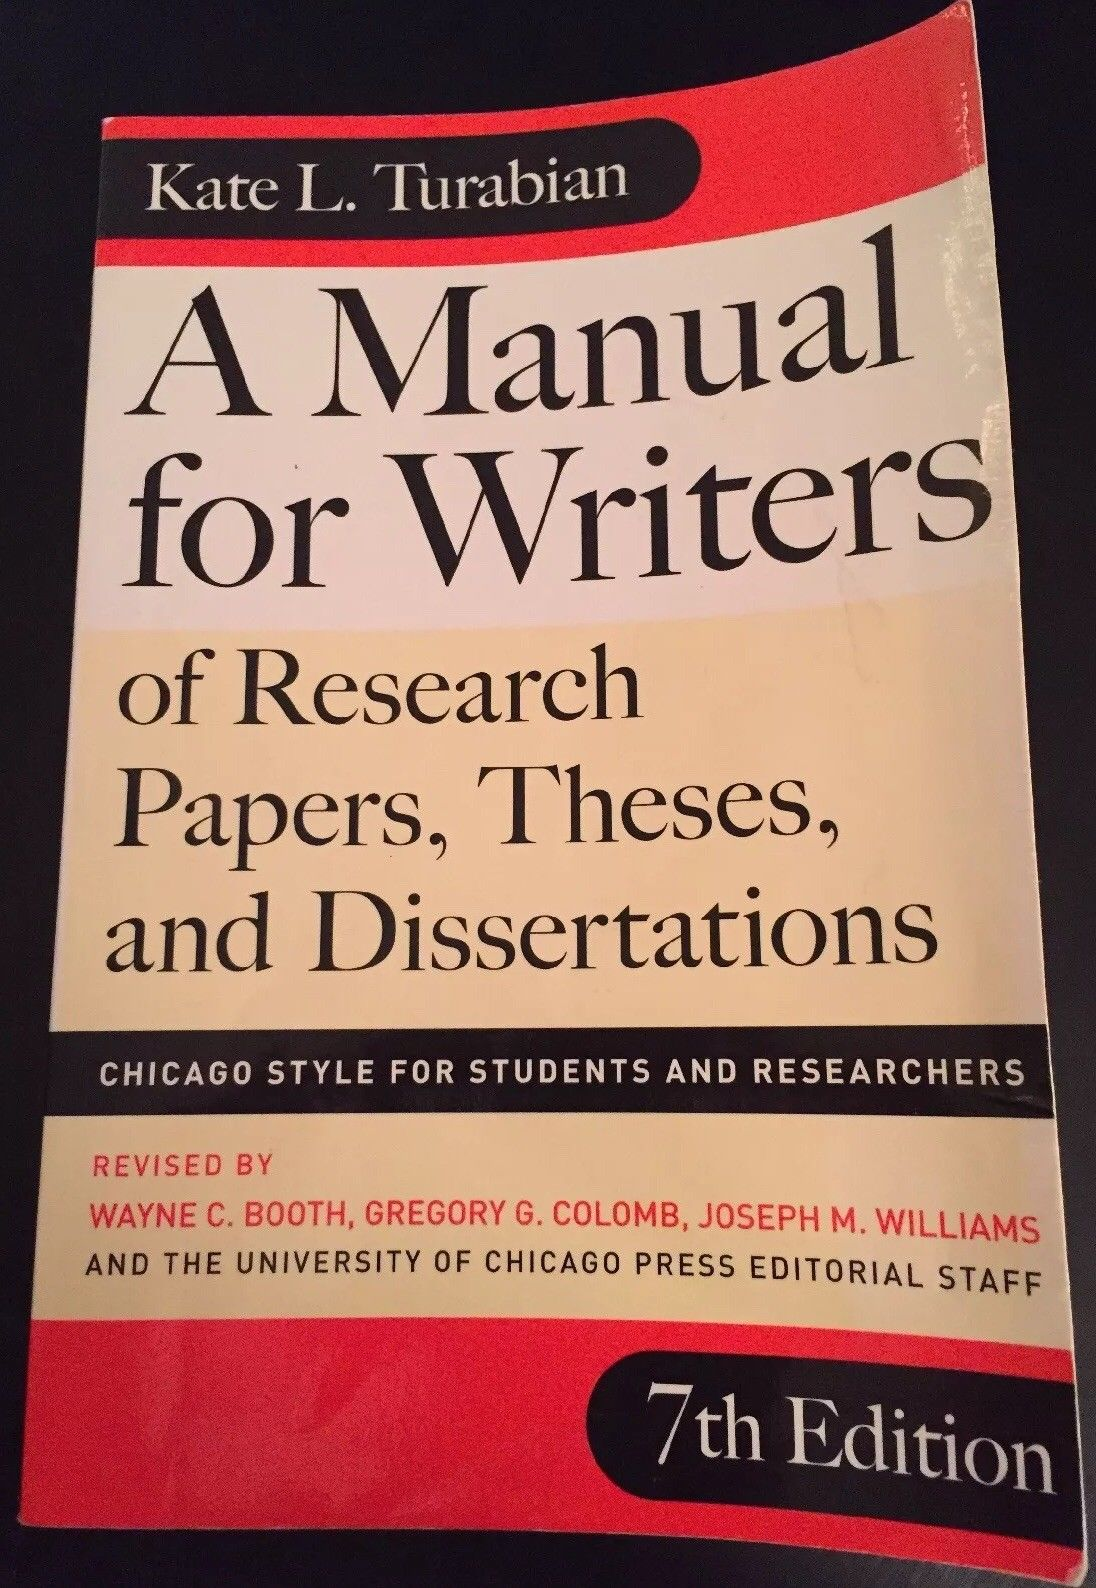 018 Research Paper Manual For Writers Of Papers Theses And Dissertations Chicago Style Students S Rare A Full